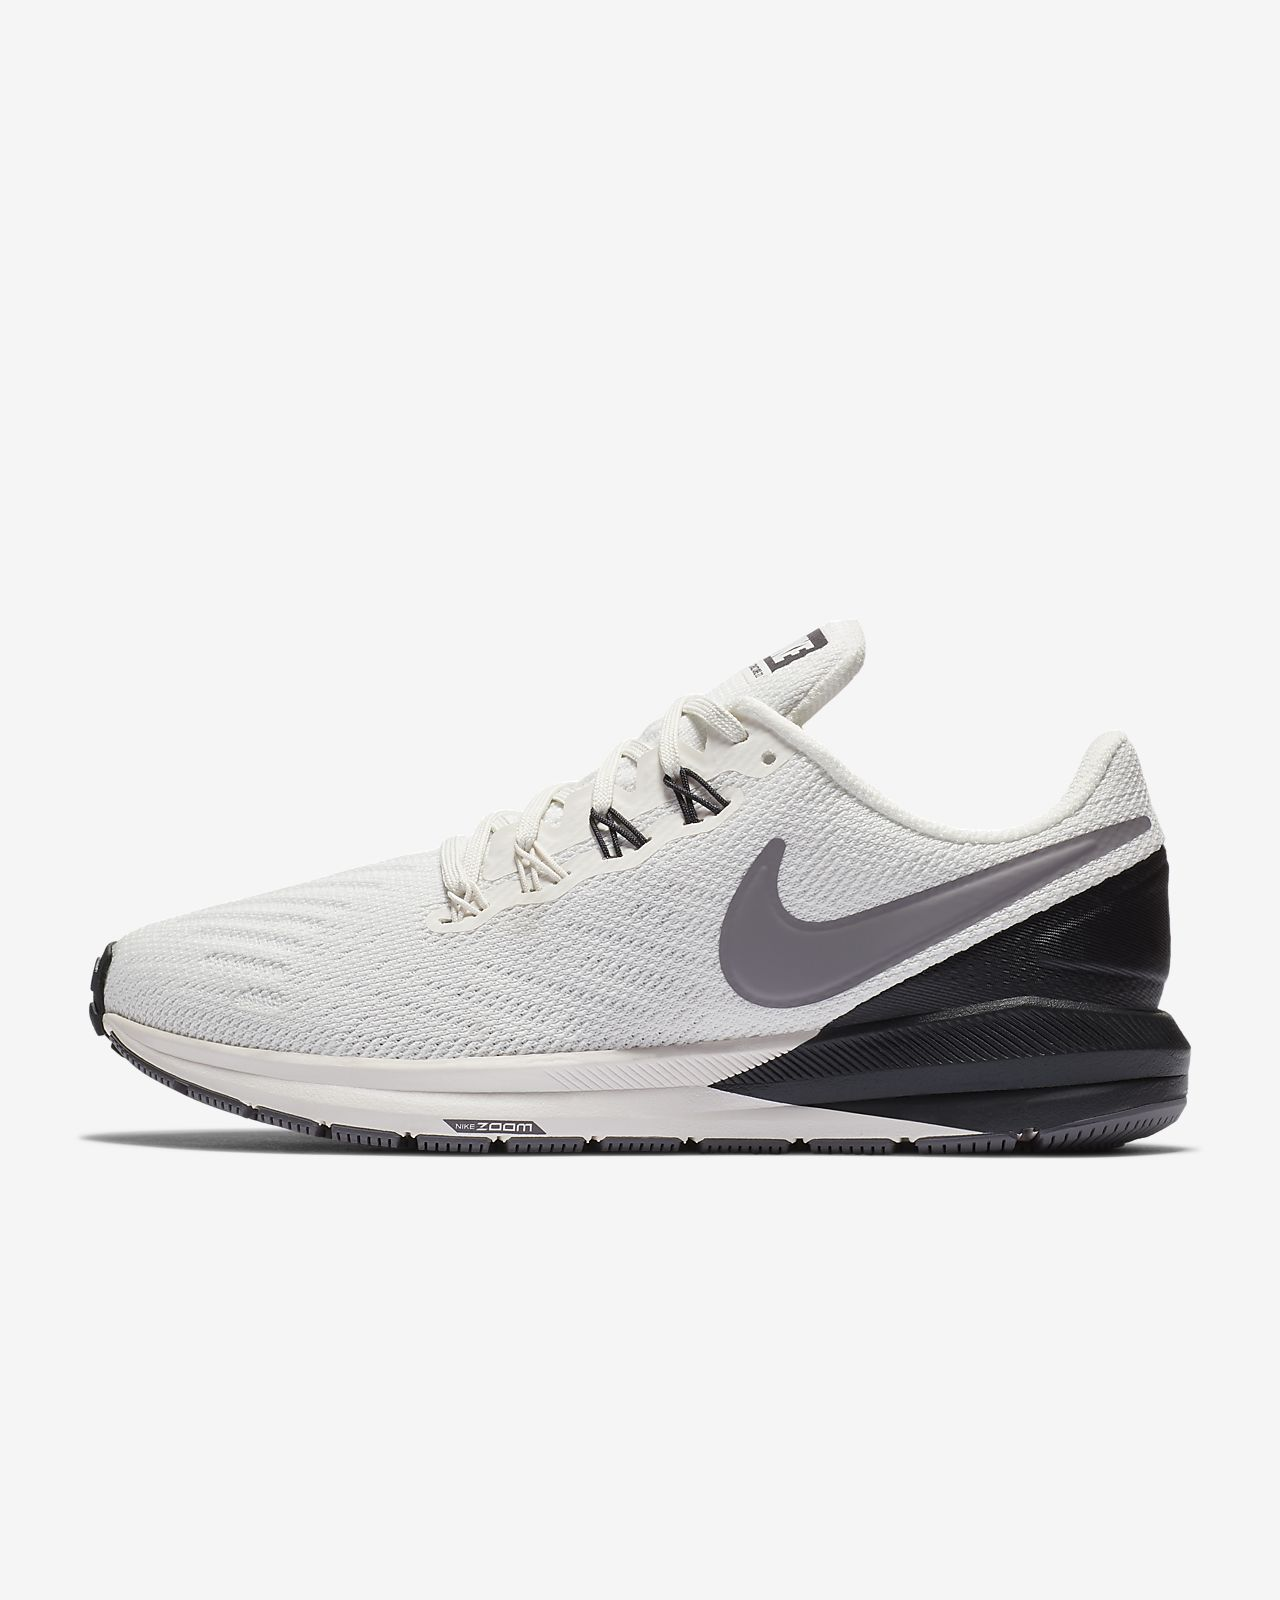 d43a71ecc621 Nike Air Zoom Structure 22 Women s Running Shoe. Nike.com PT